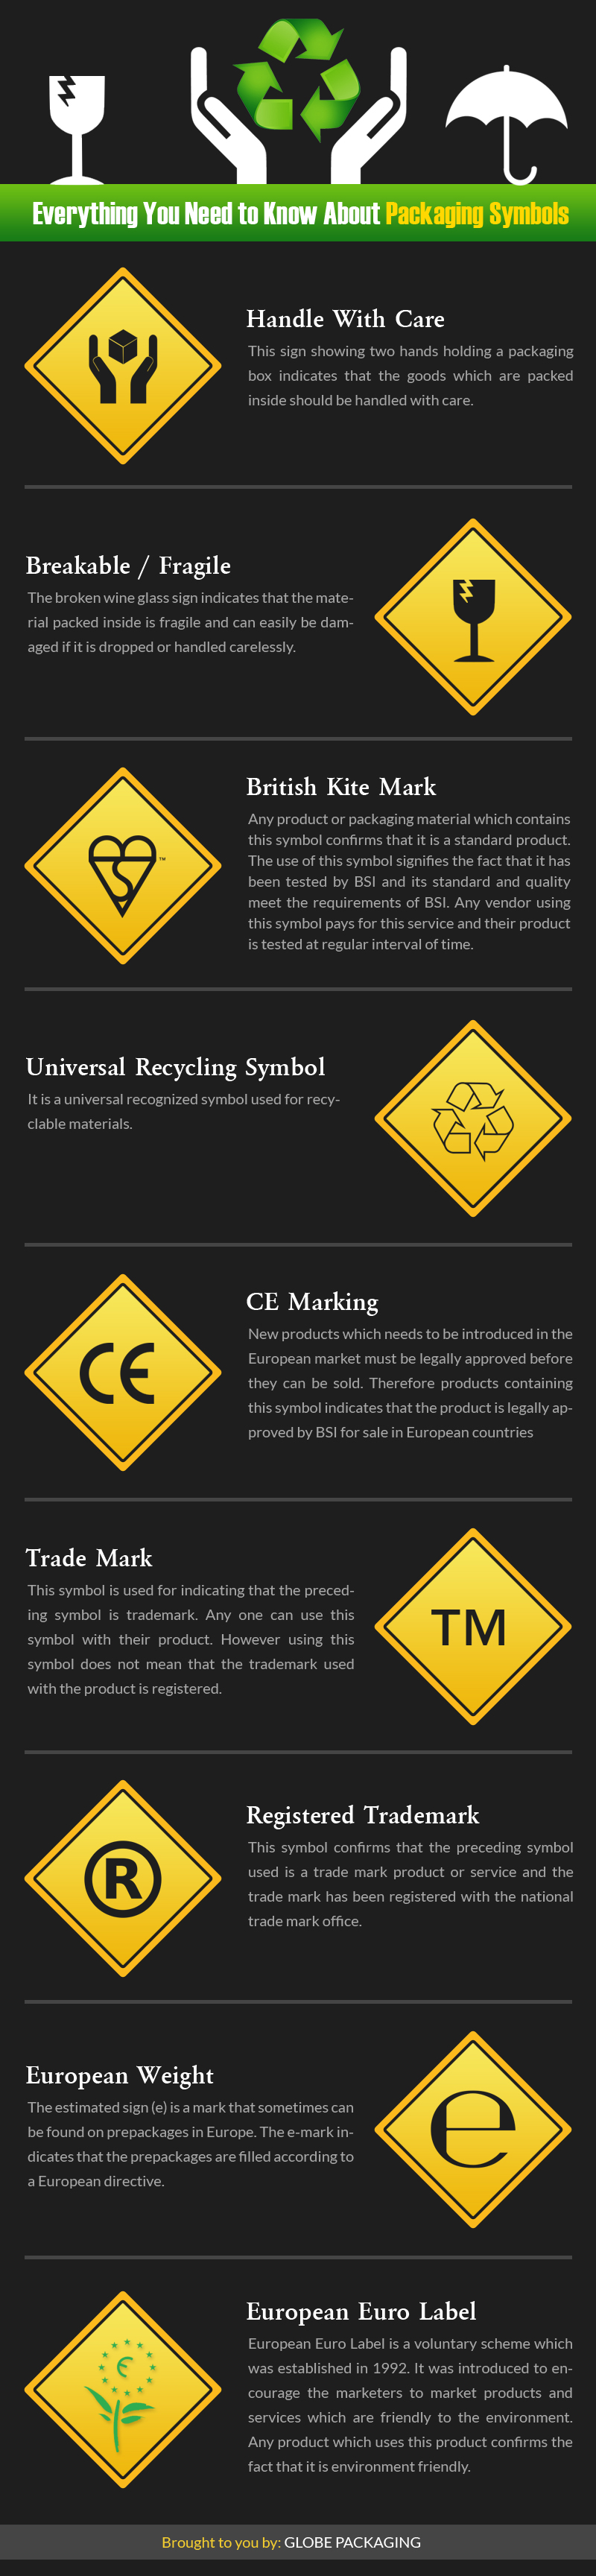 Popular Packaging Symbols Explained